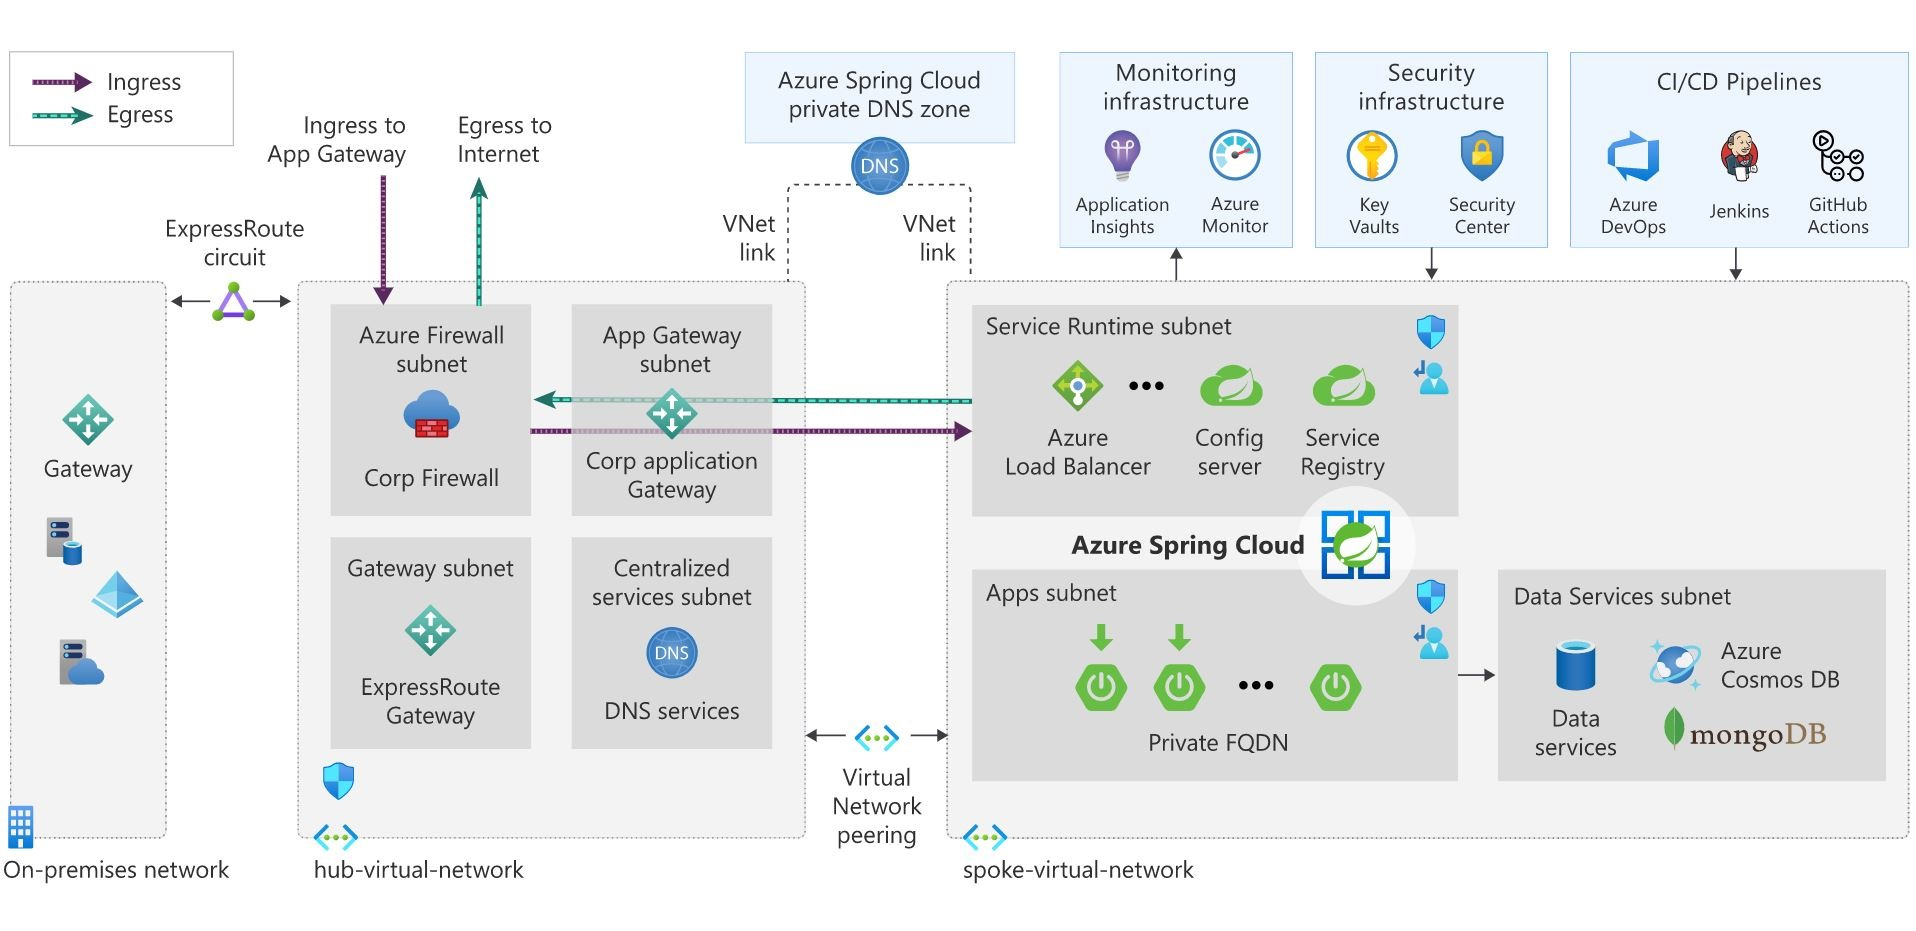 Azure Spring Cloud and Java on Azure reference architecture with common Azure platform services, security, and integration